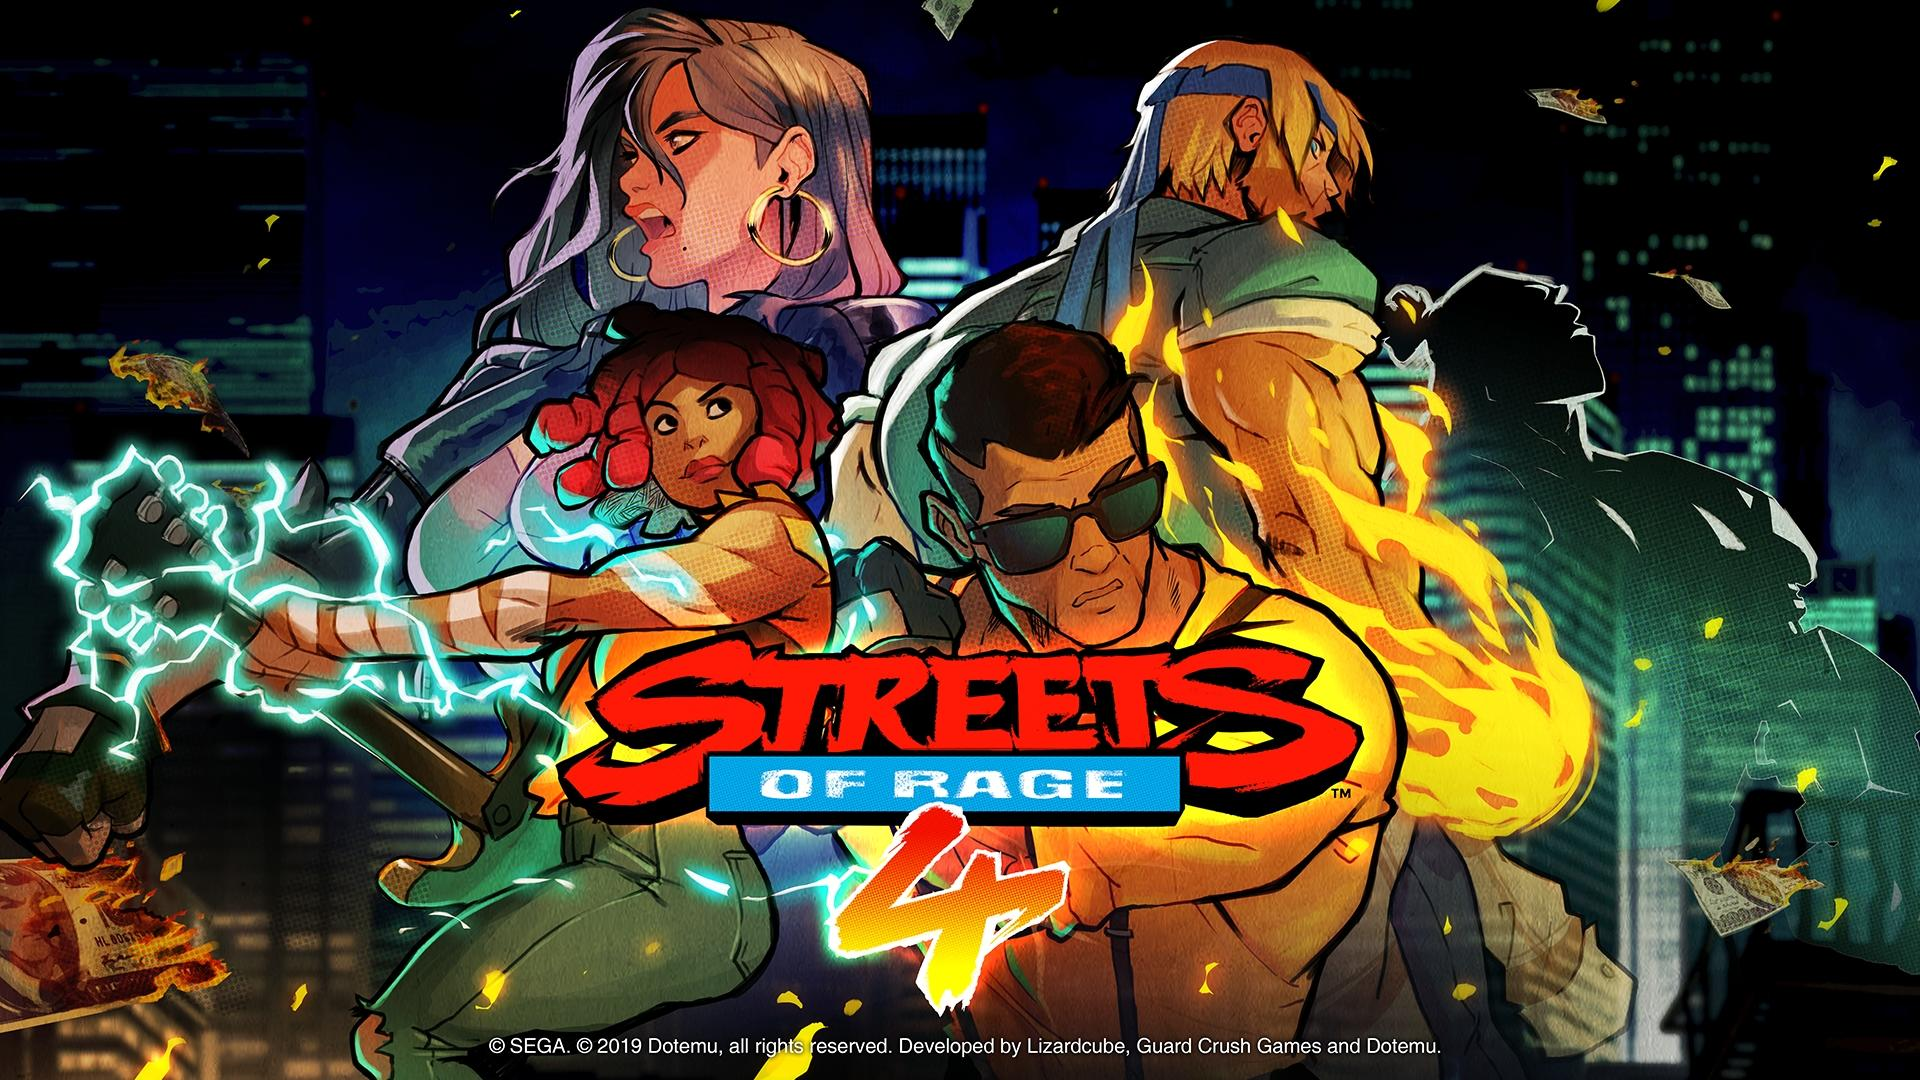 Views on Streets of Rage 4